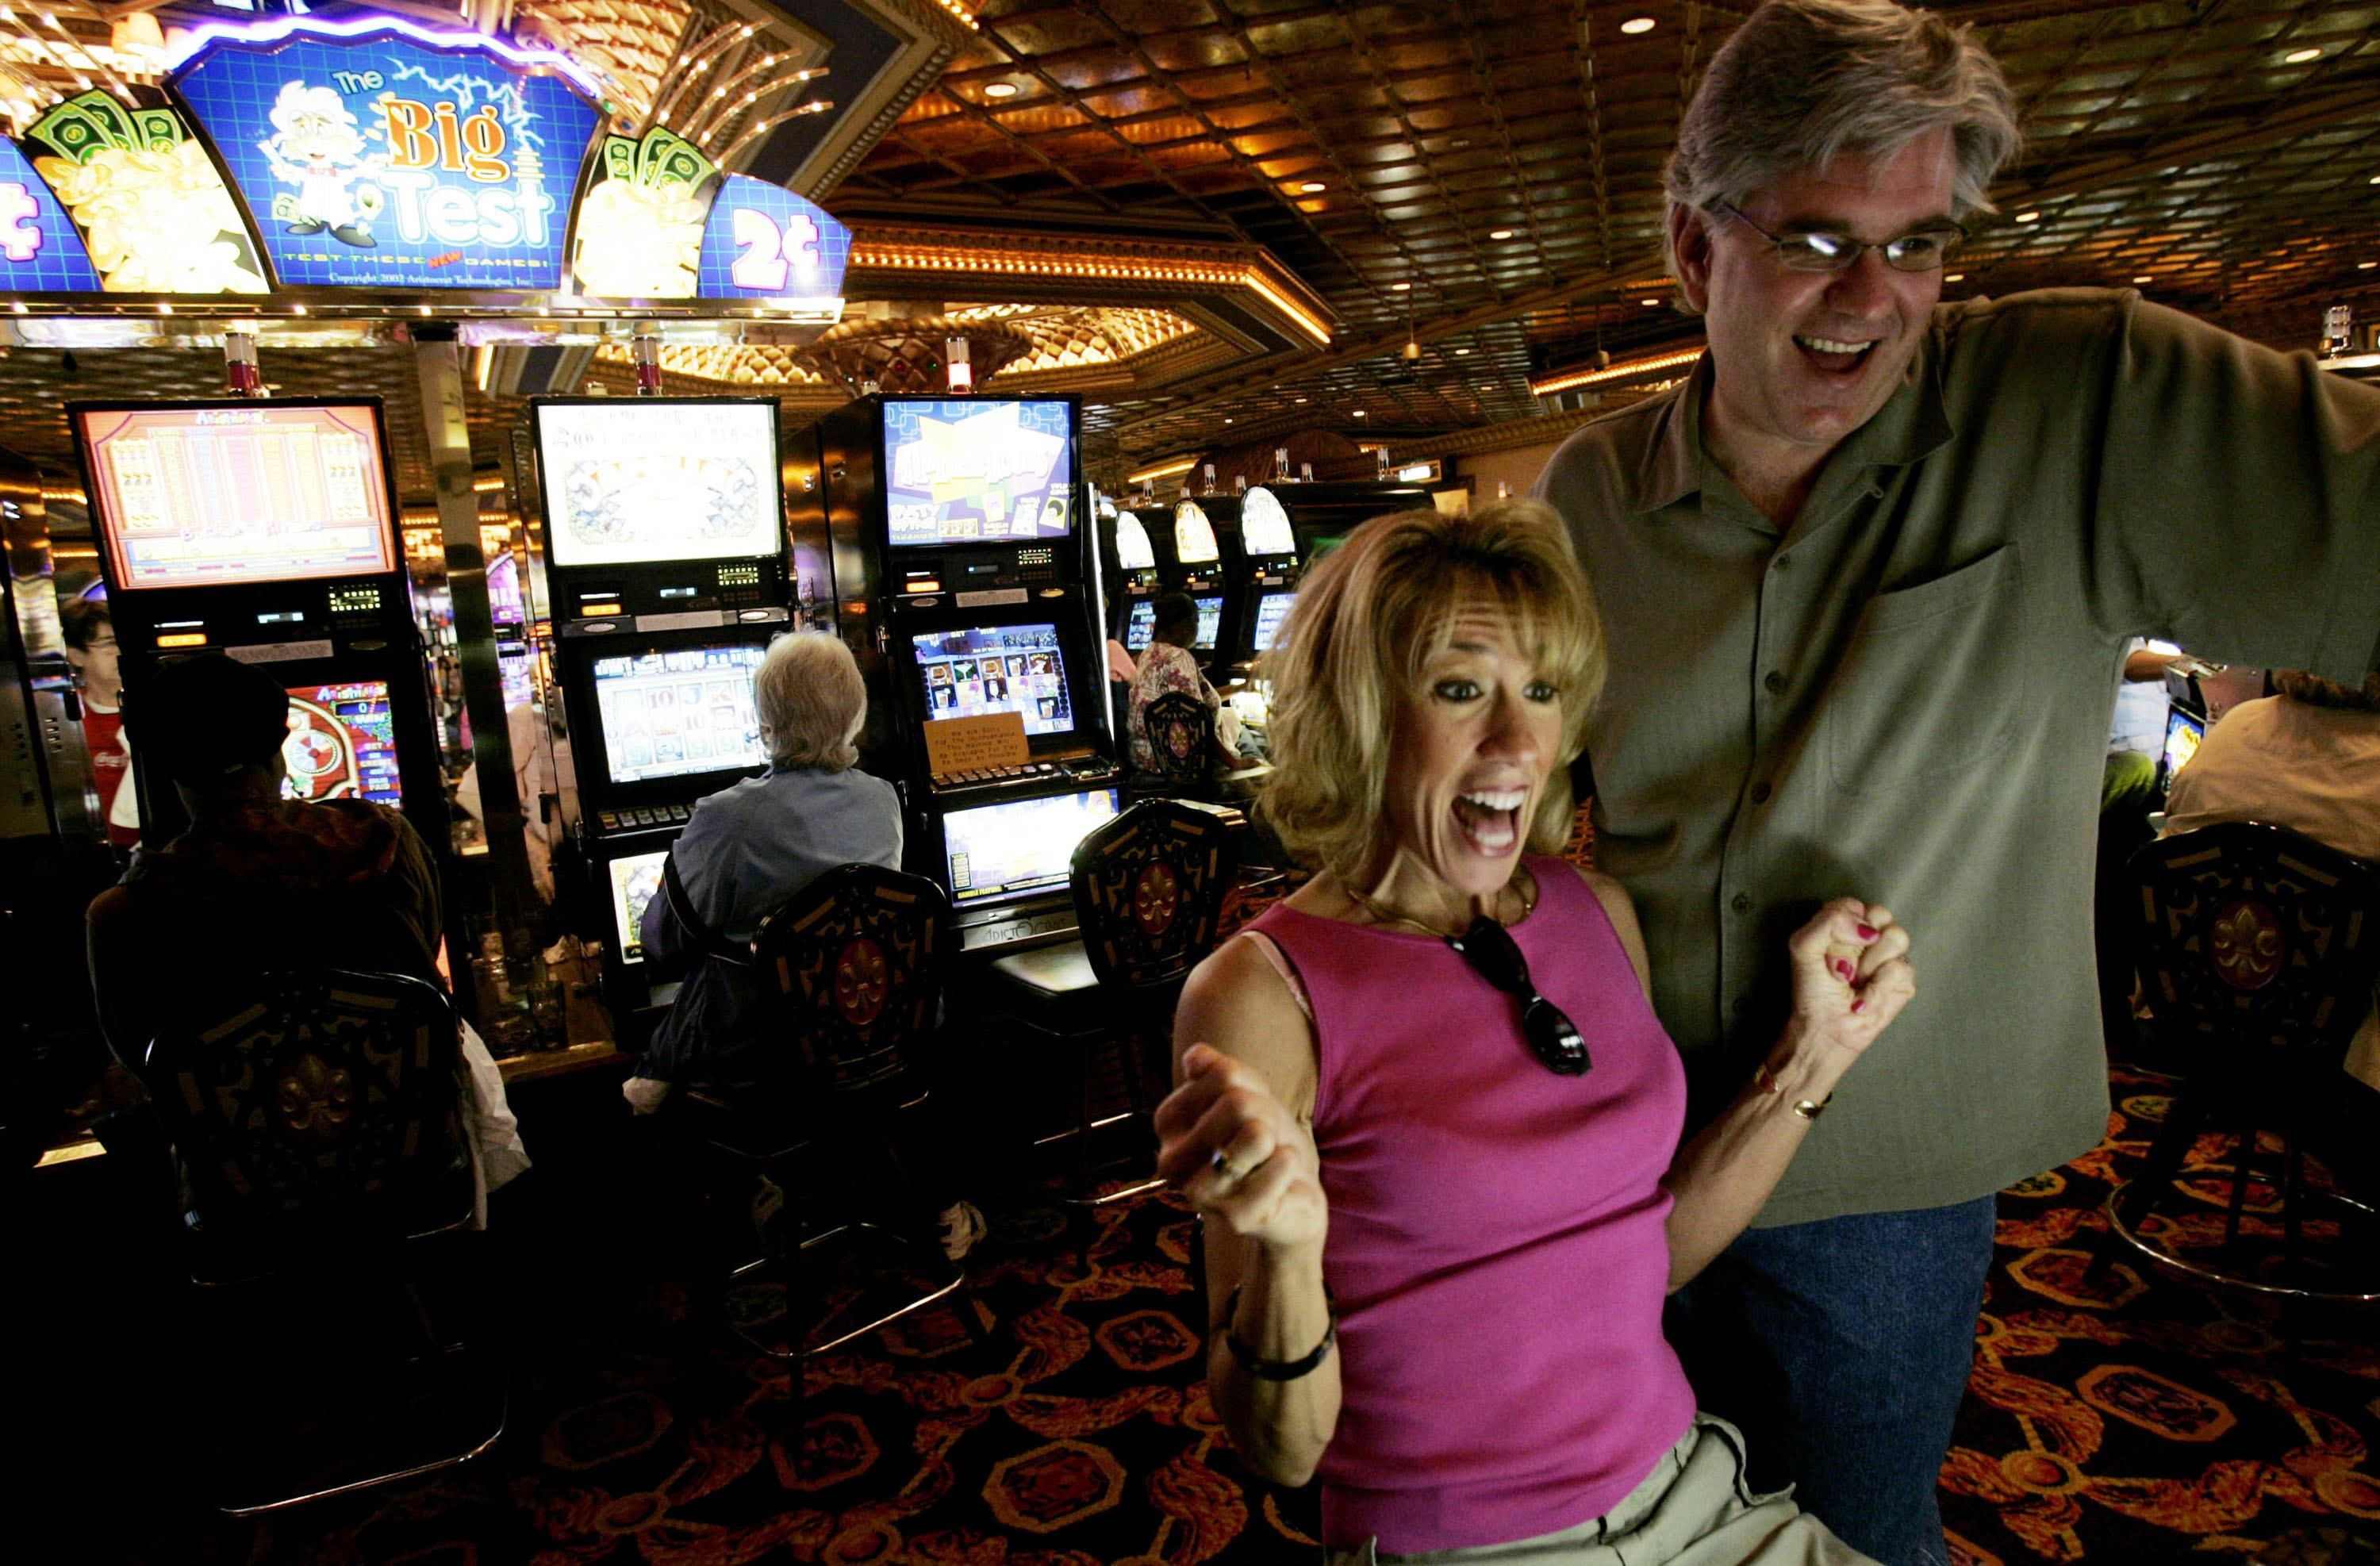 A couple celebrates winning after a couple of spins on the slot machines